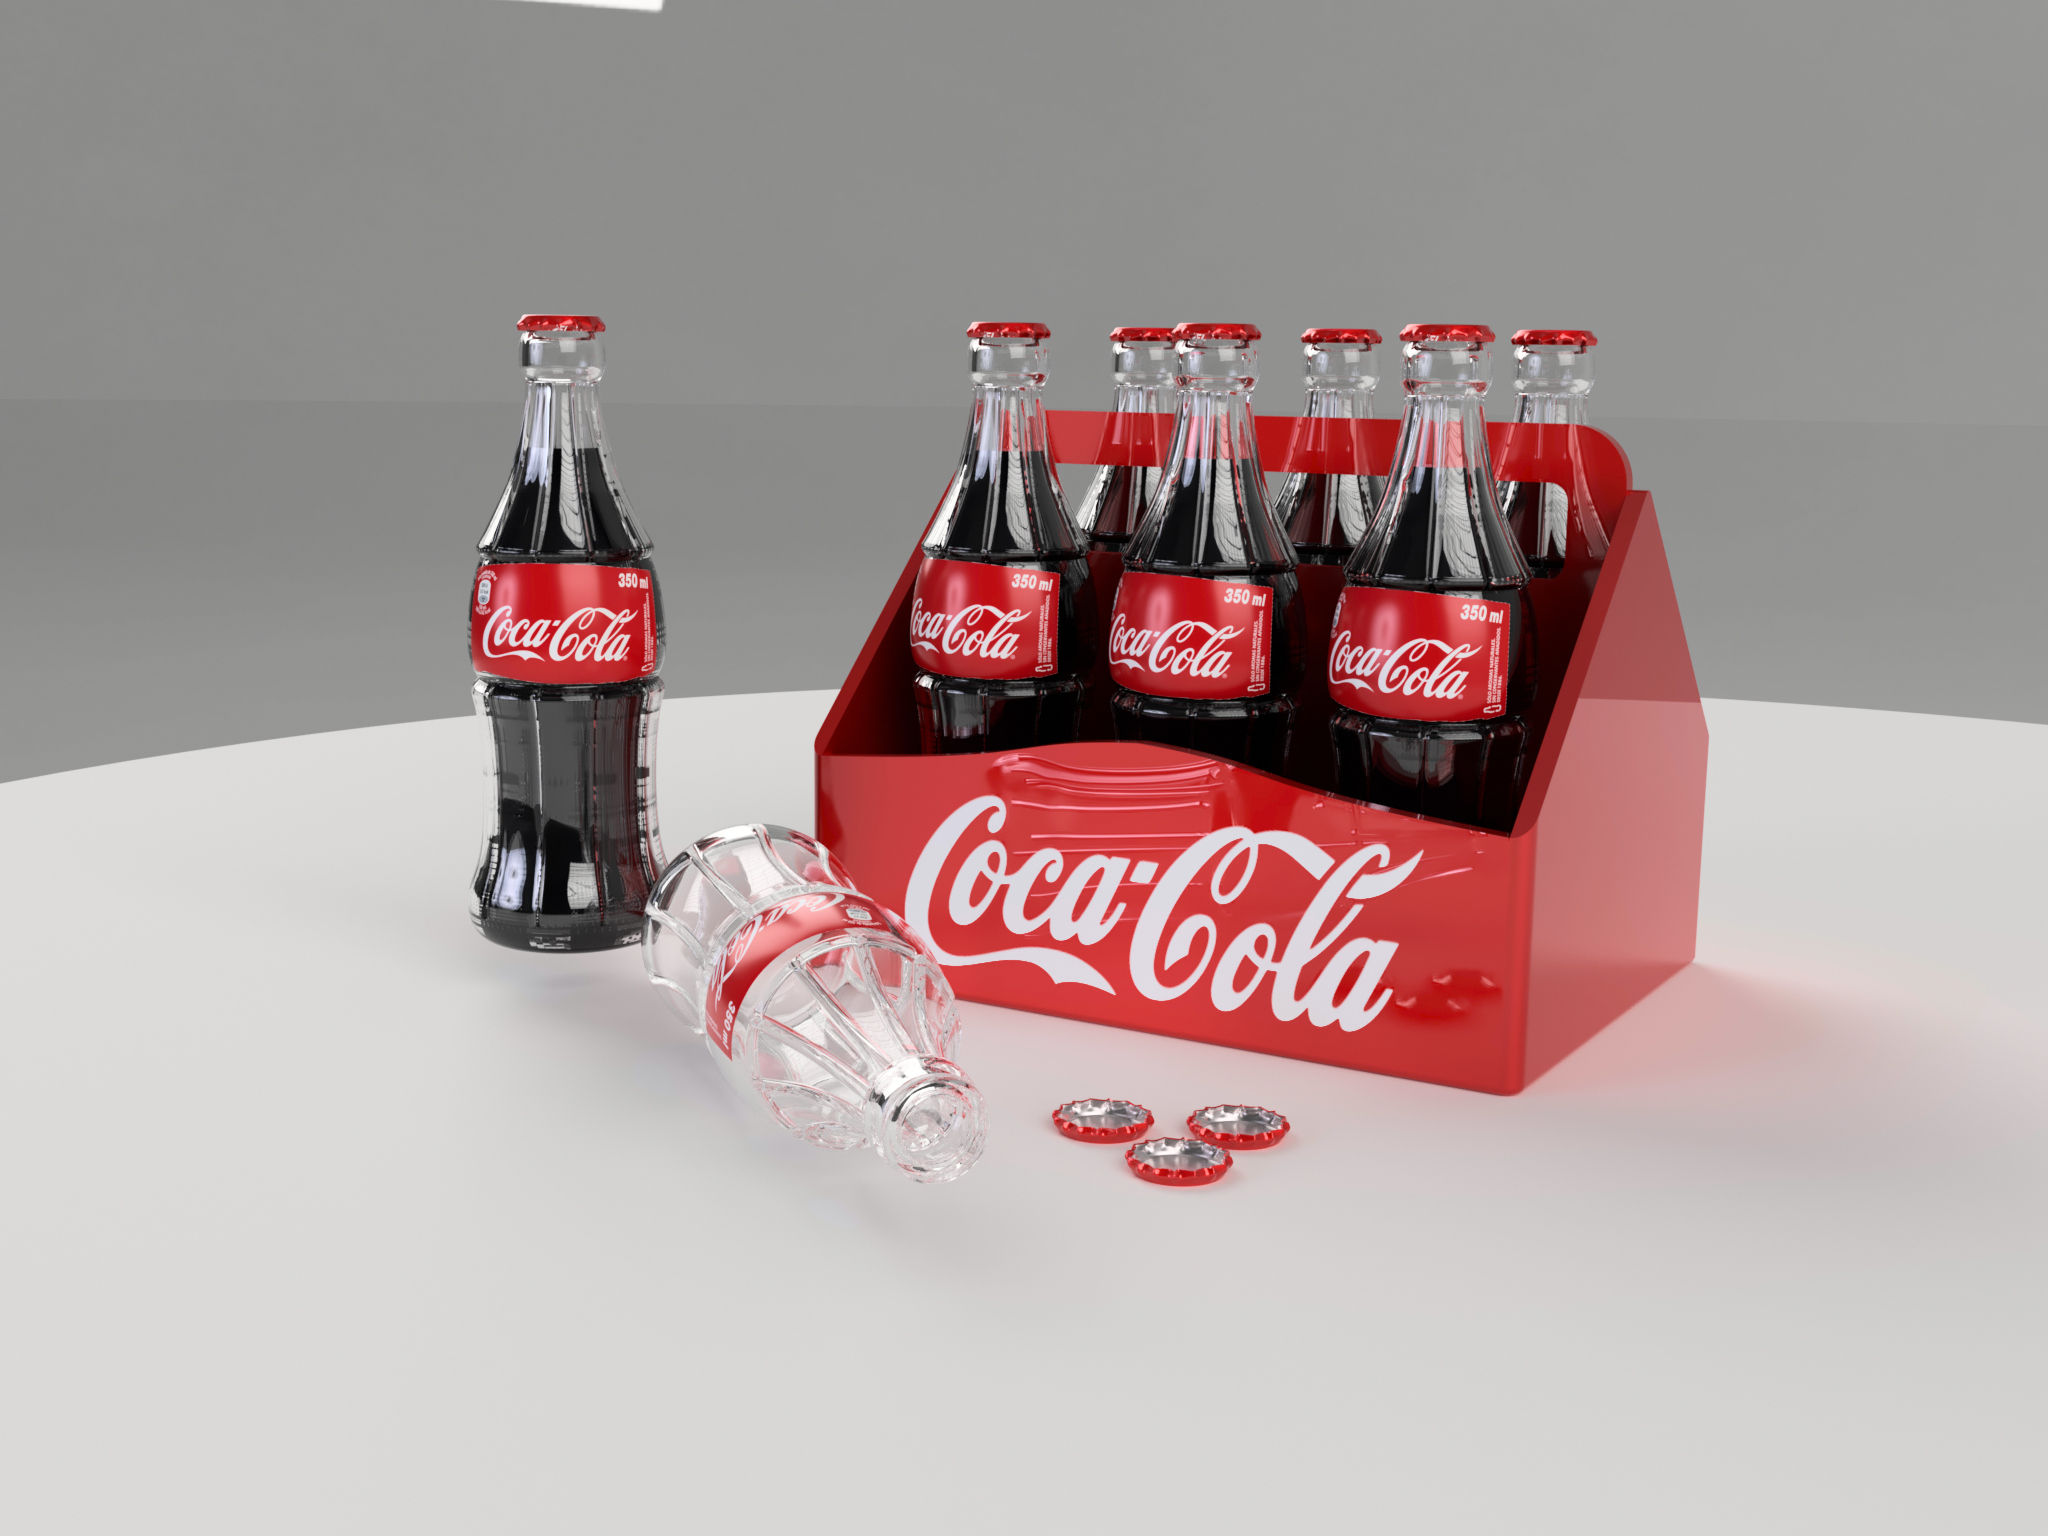 Botella-cocacola-2017-dec-25-12-16-06am-000-customizedview14593604725-jpg-3500-3500